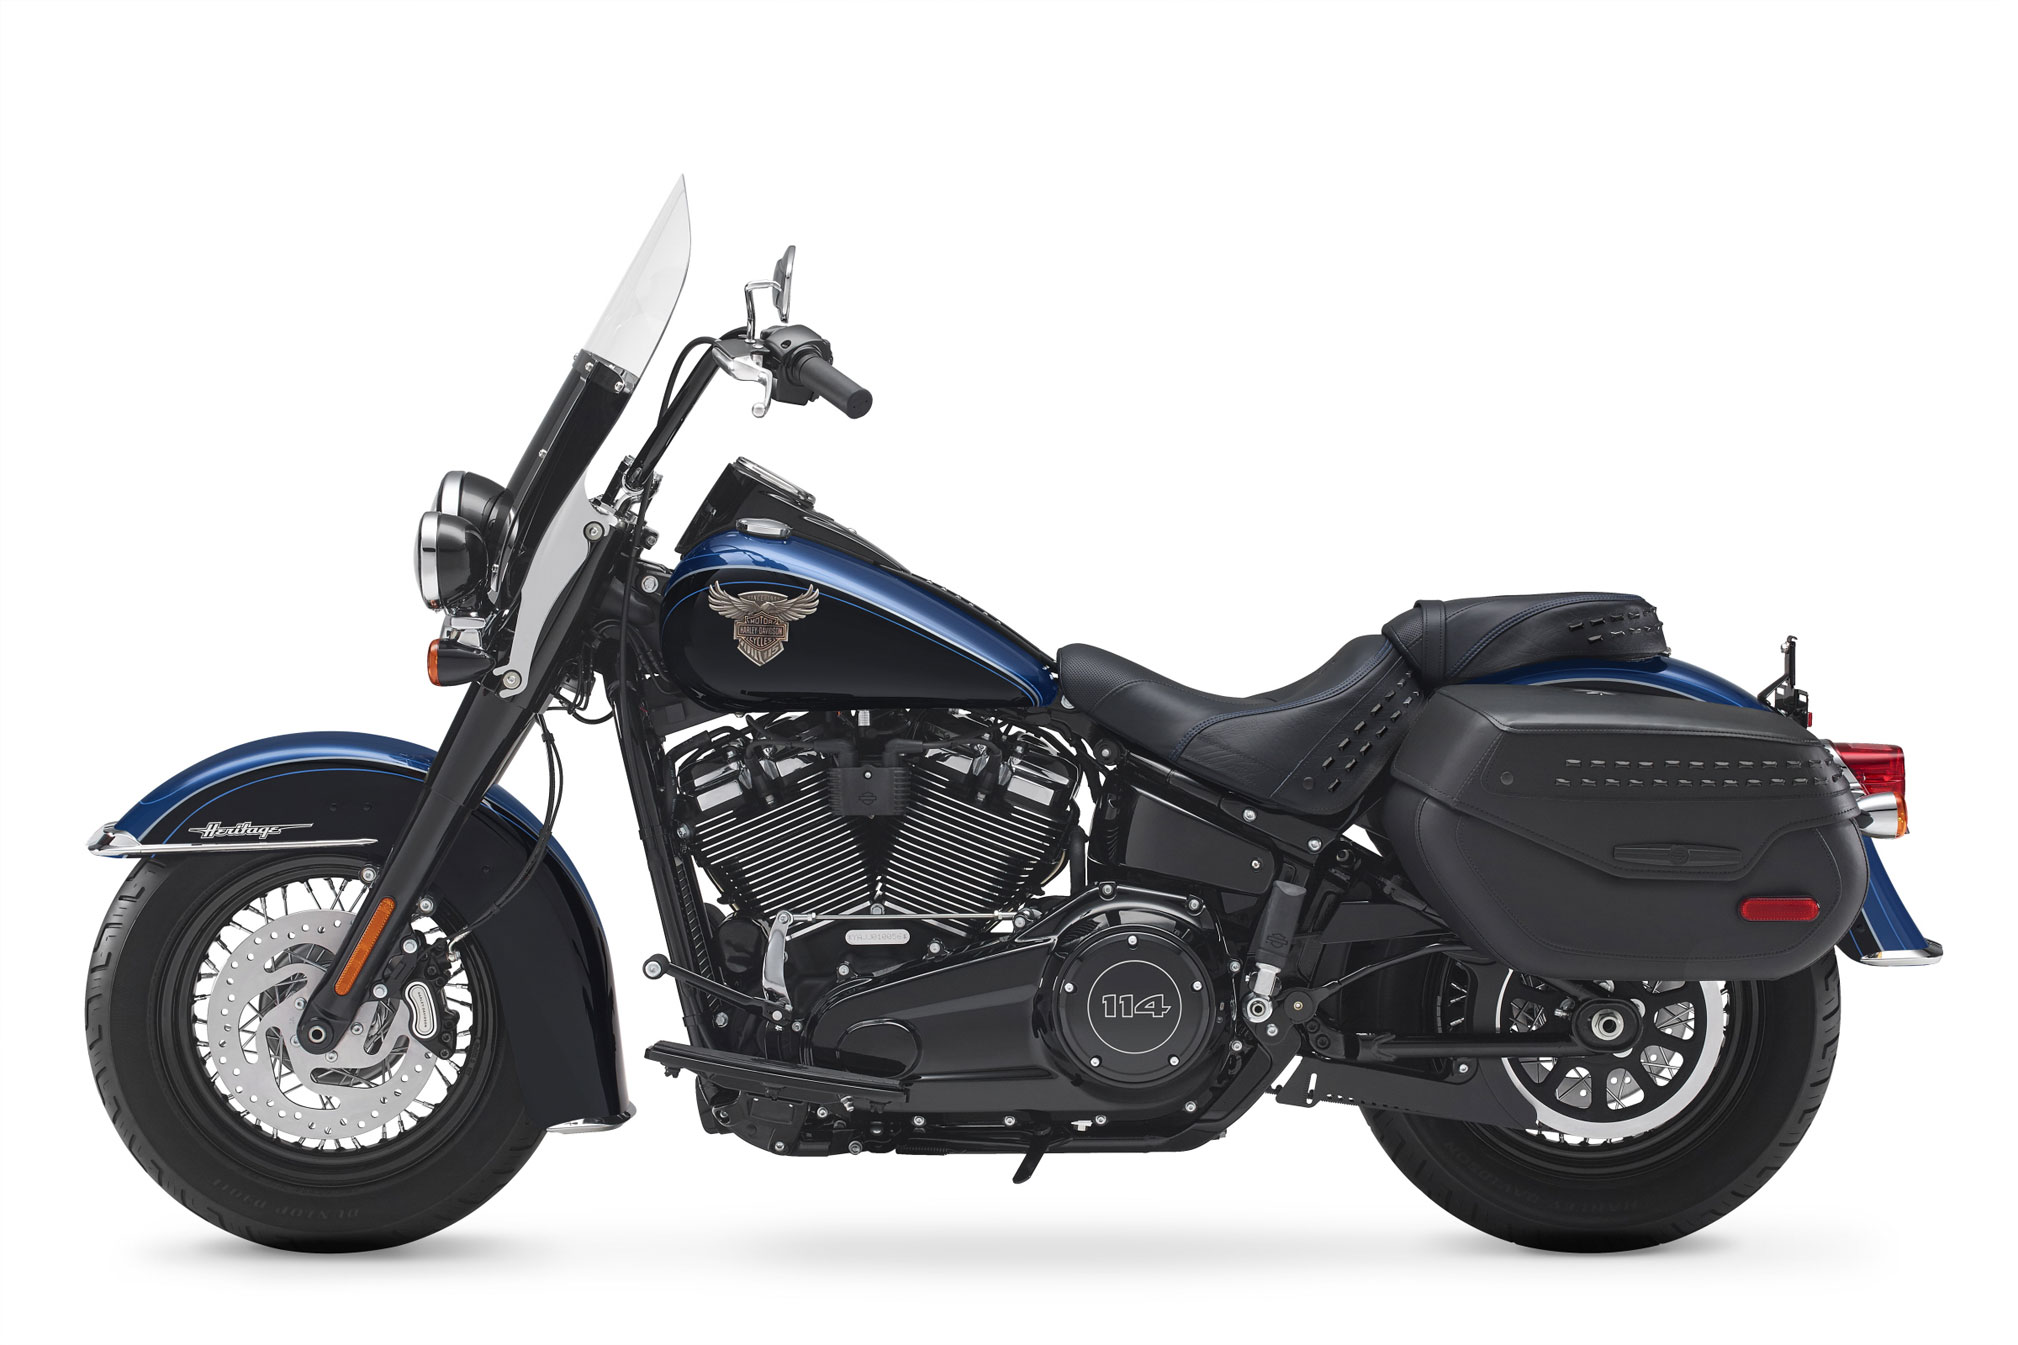 2018 Harley-Davidson Heritage Classic 114 - 115th Anniversary Review - TotalMotorcycle